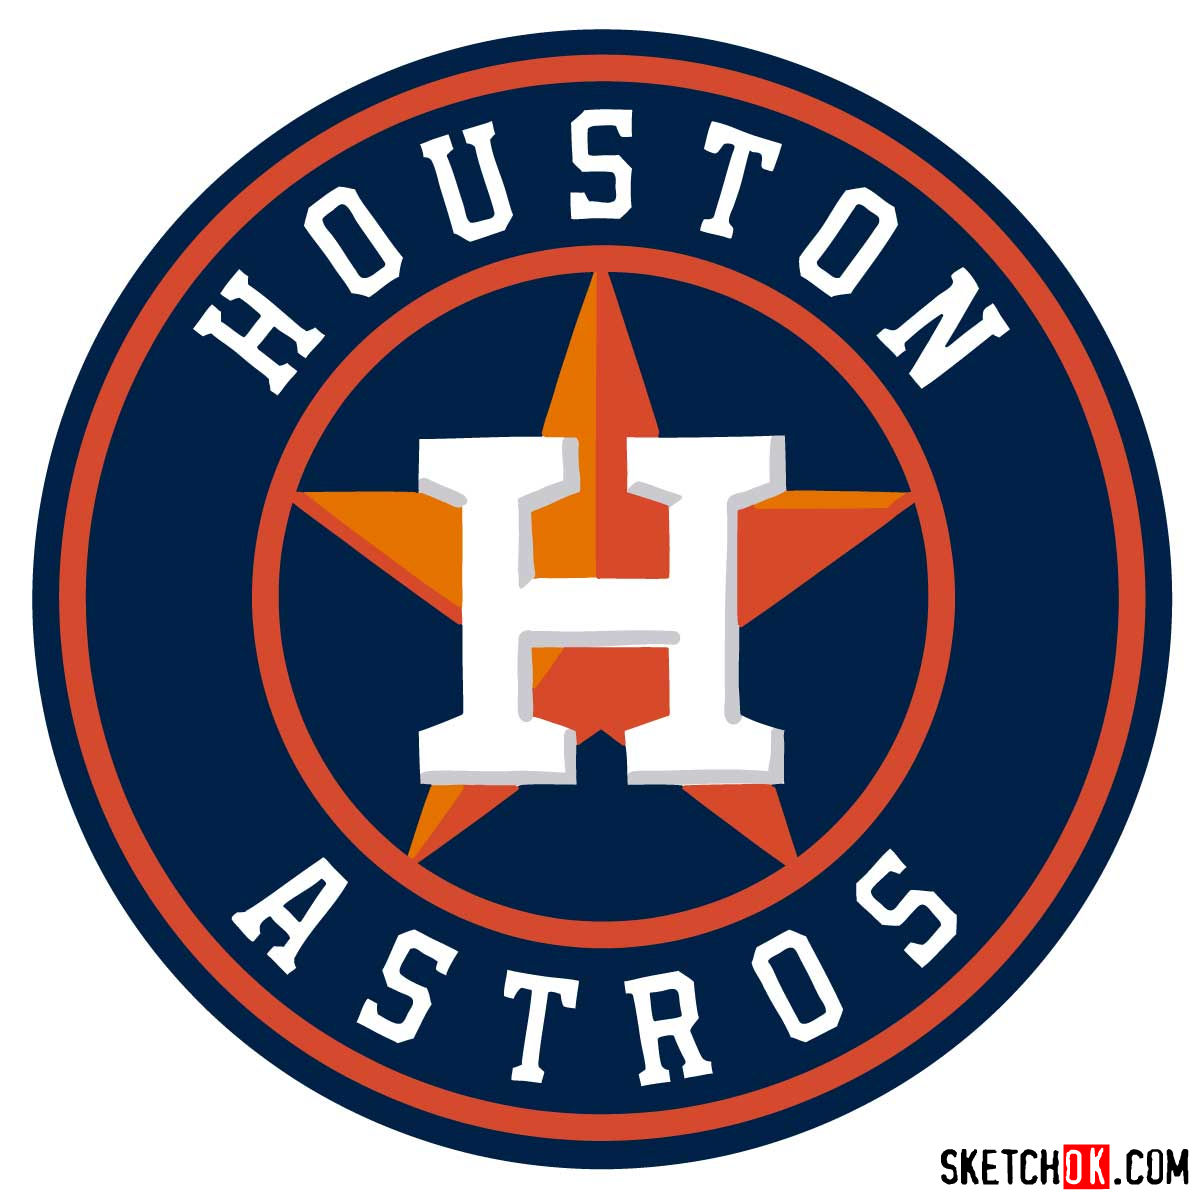 How to draw Houston Astros logo | MLB logos